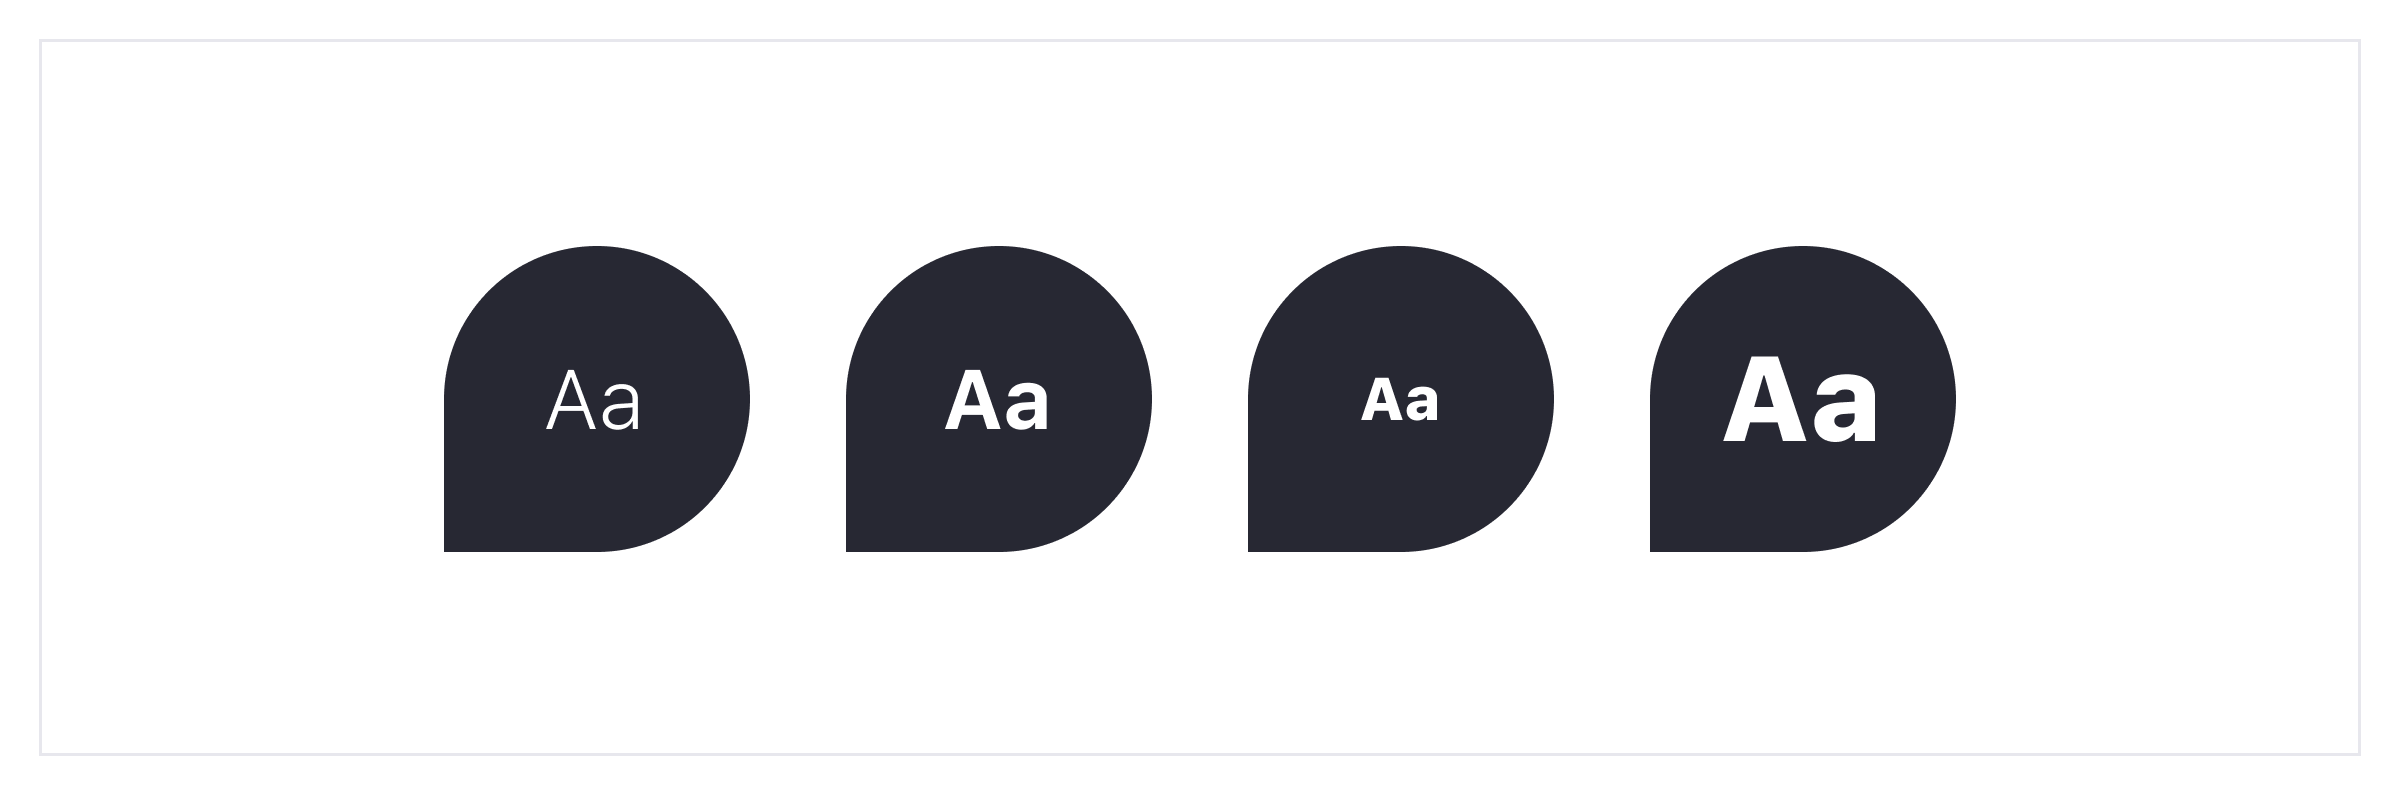 Building A Component Library Using Figma — Smashing Magazine